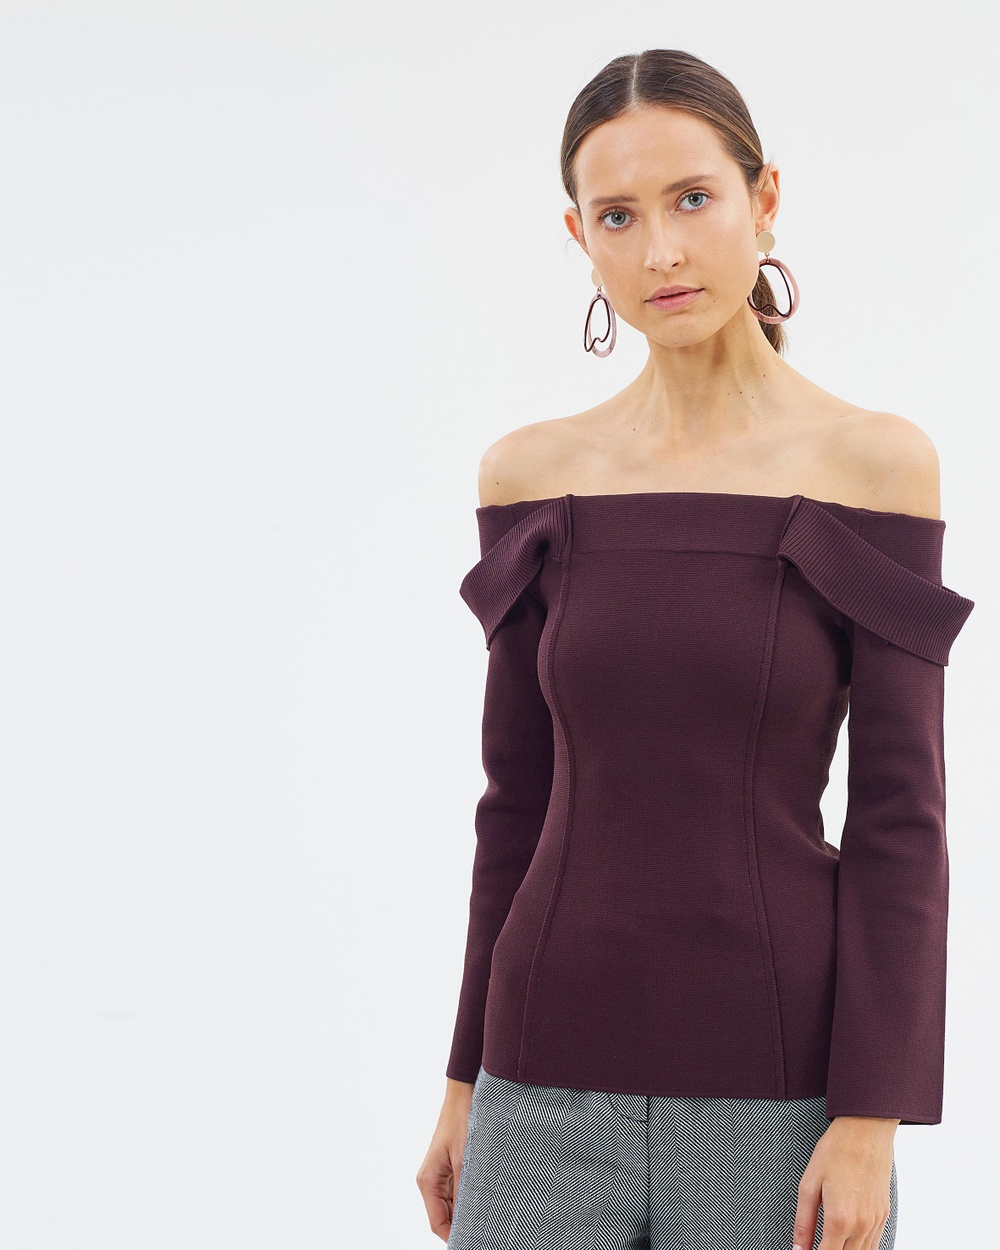 CAMILLA AND MARC Carole Knit Top Tops Black Orchid Carole Knit Top